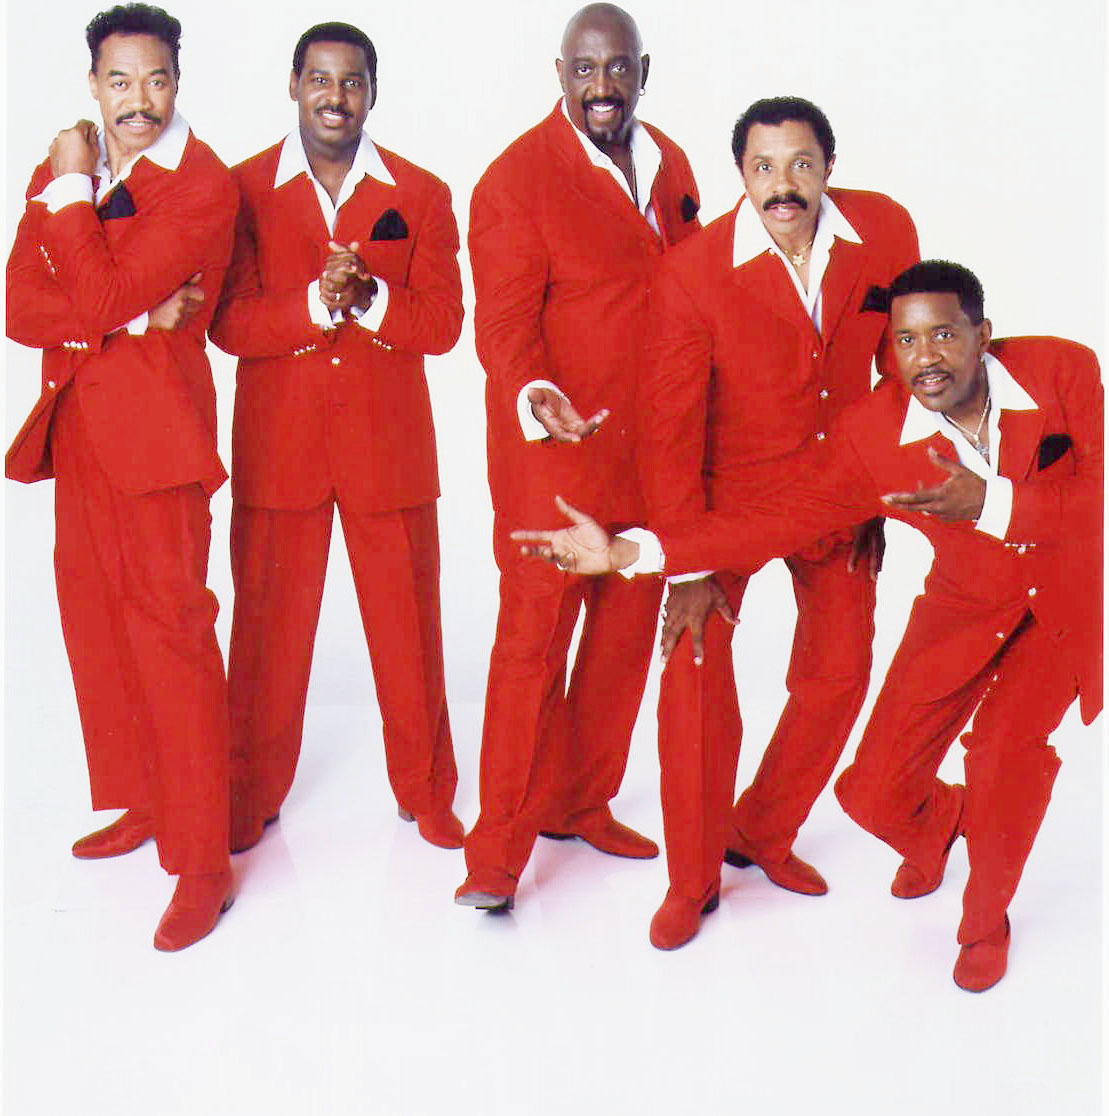 THE TEMPTATIONS Sign Up Women for Free Mammograms""